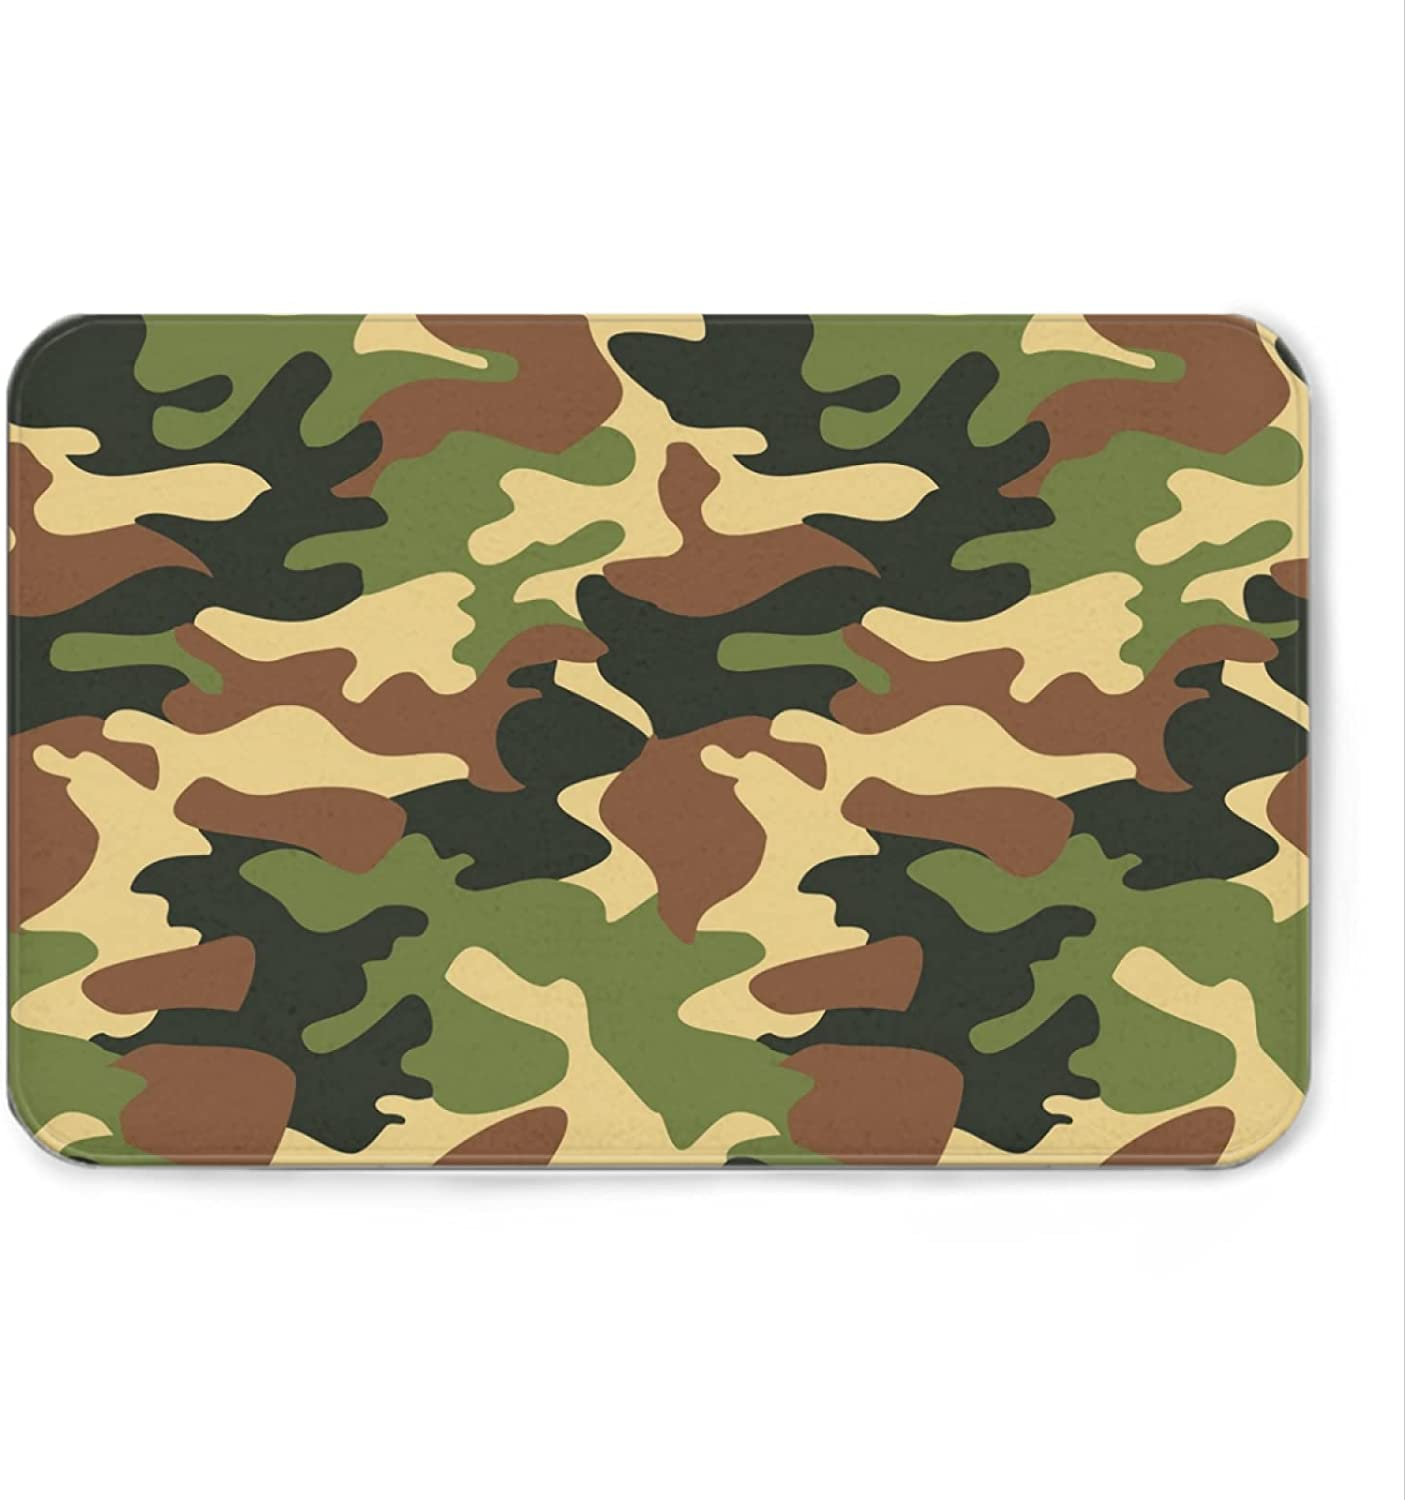 Camouflage Welcome Mat Bath Rugs Non-Slip NEW before selling Mail order cheap Bathroom Doormat